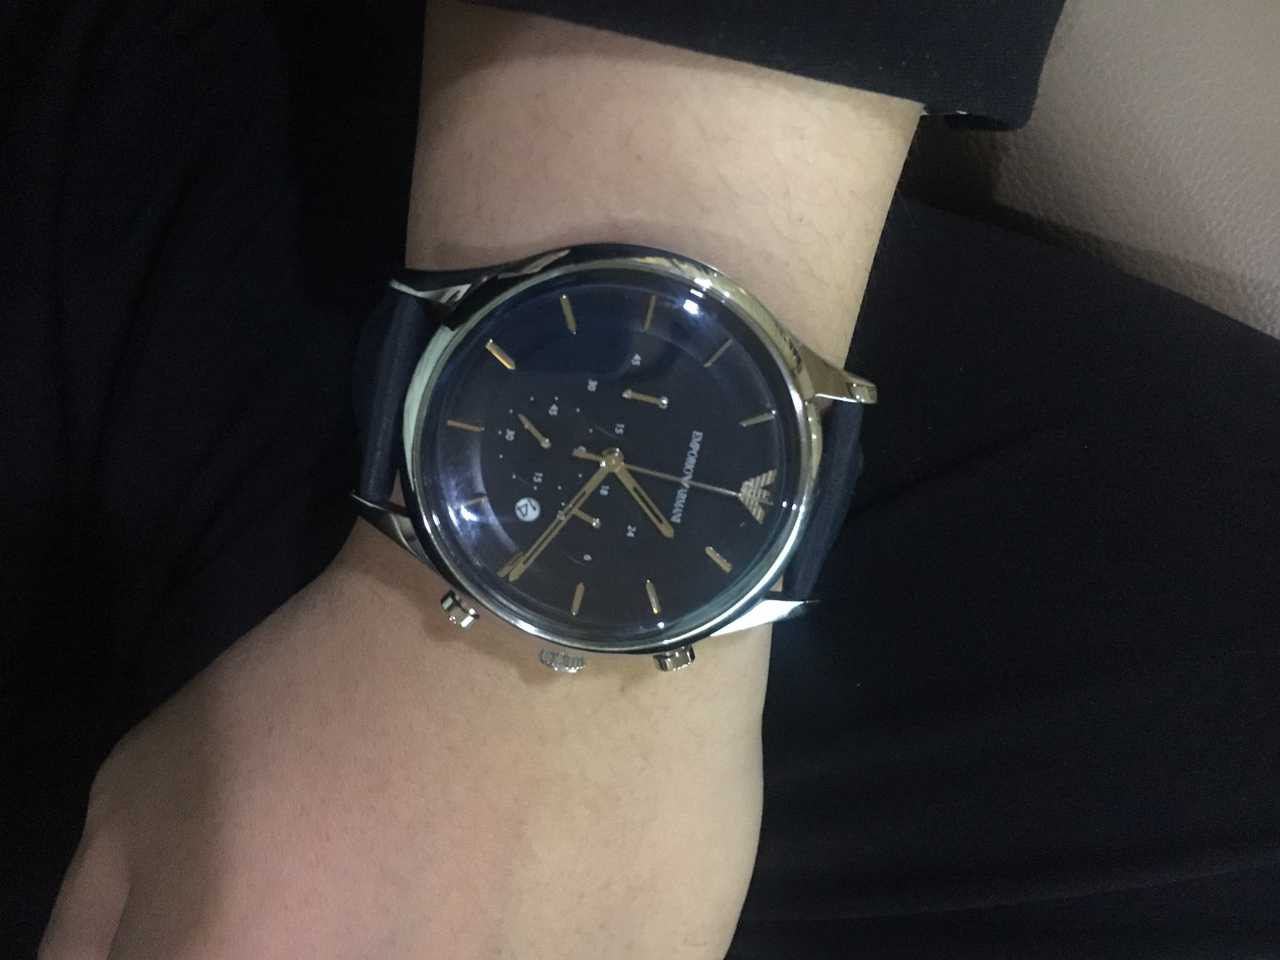 dong-ho-armani-day-da-ar11018-chinh-hang-armanishop-vn